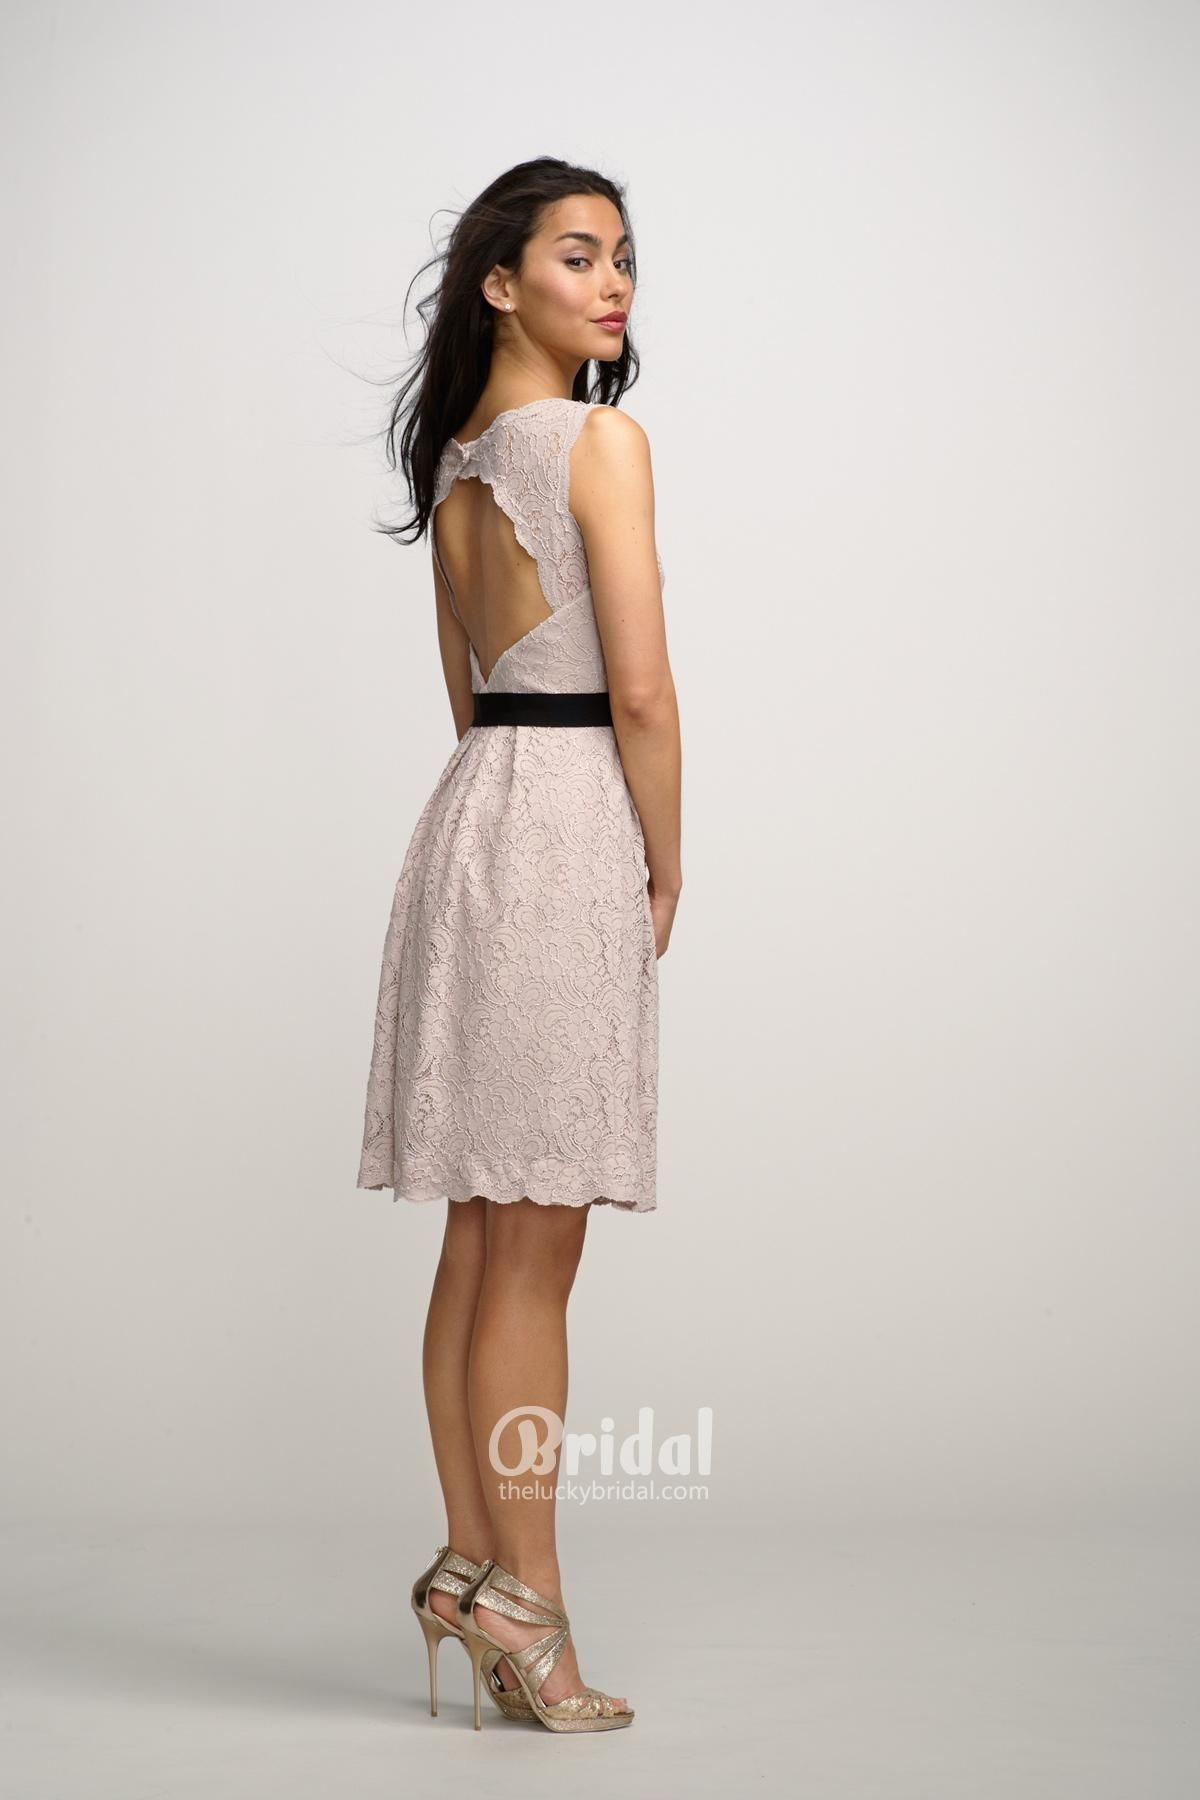 Boat neck sleeveless lace short blush dress with keyhole back